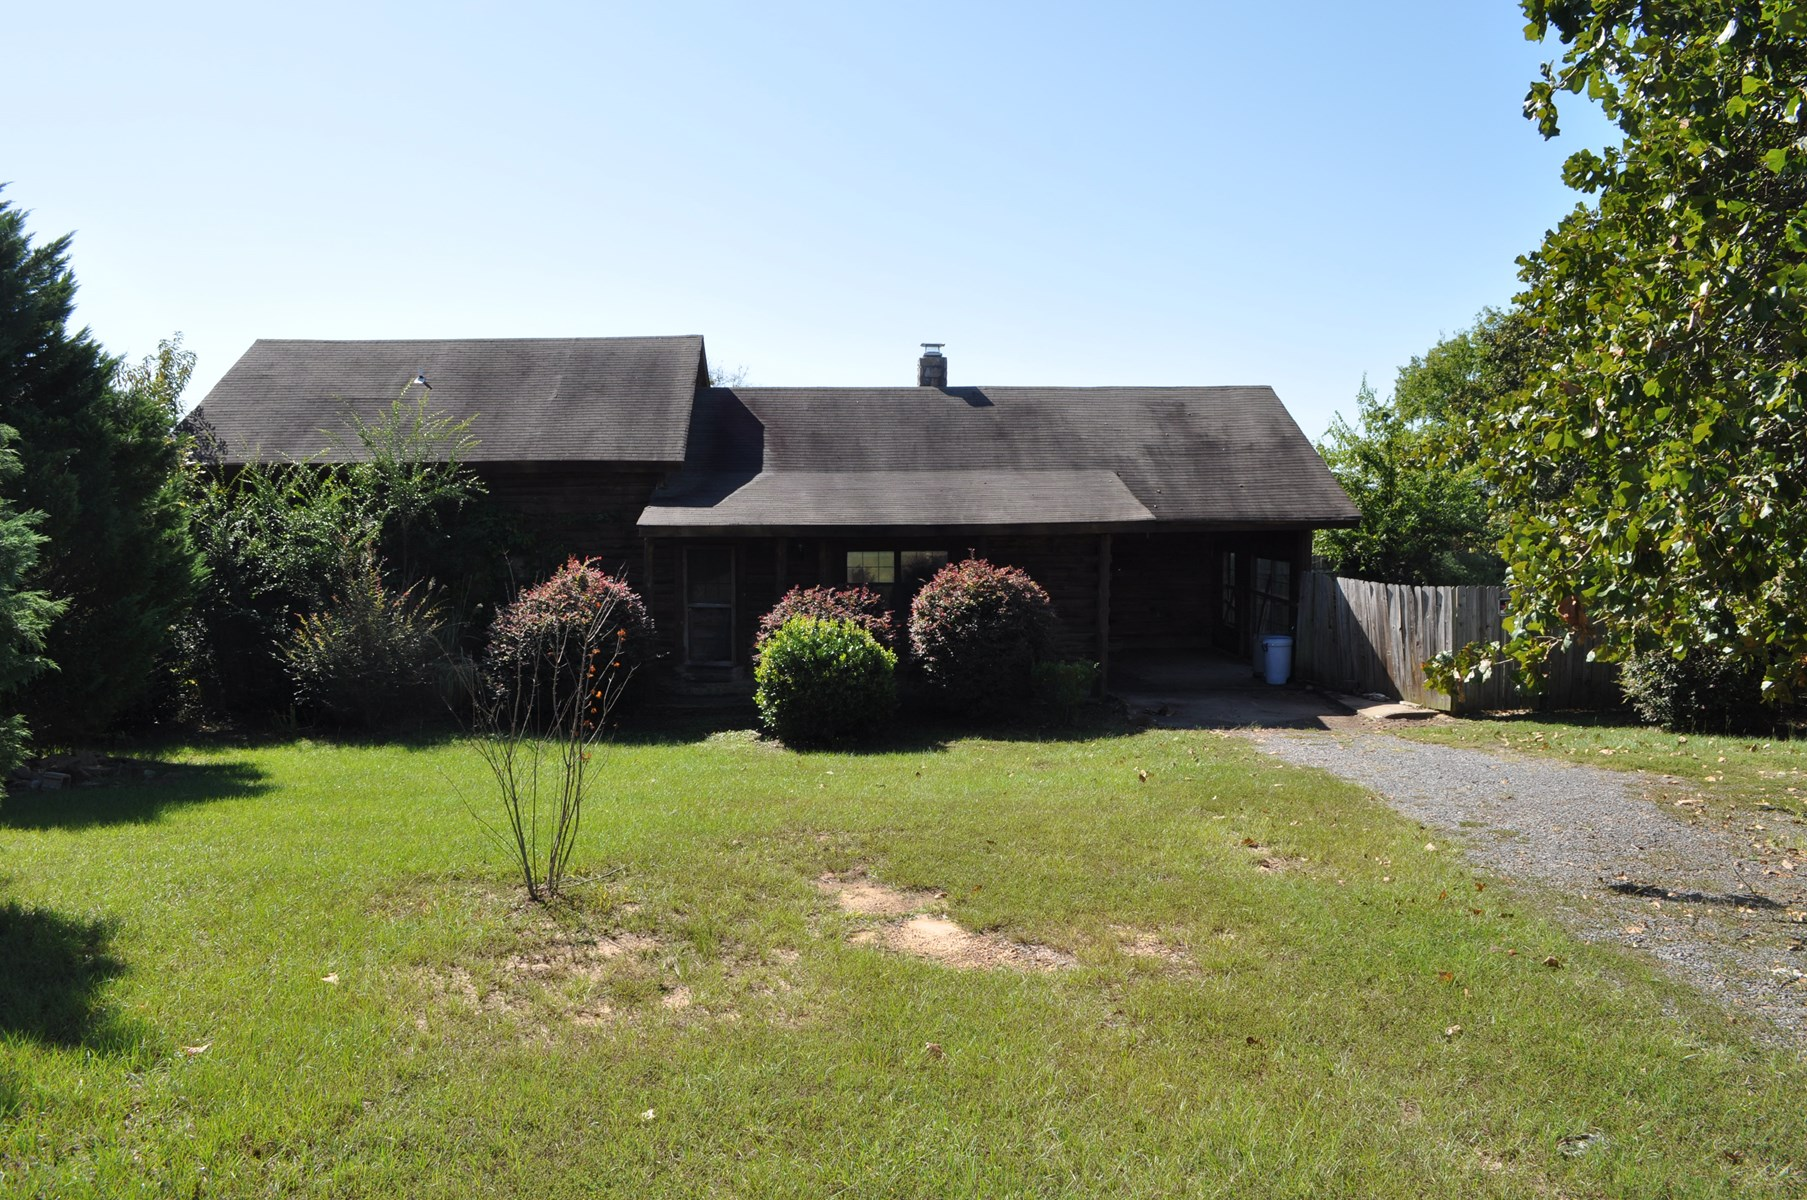 Foreclosed Country Log Home For Sale!!